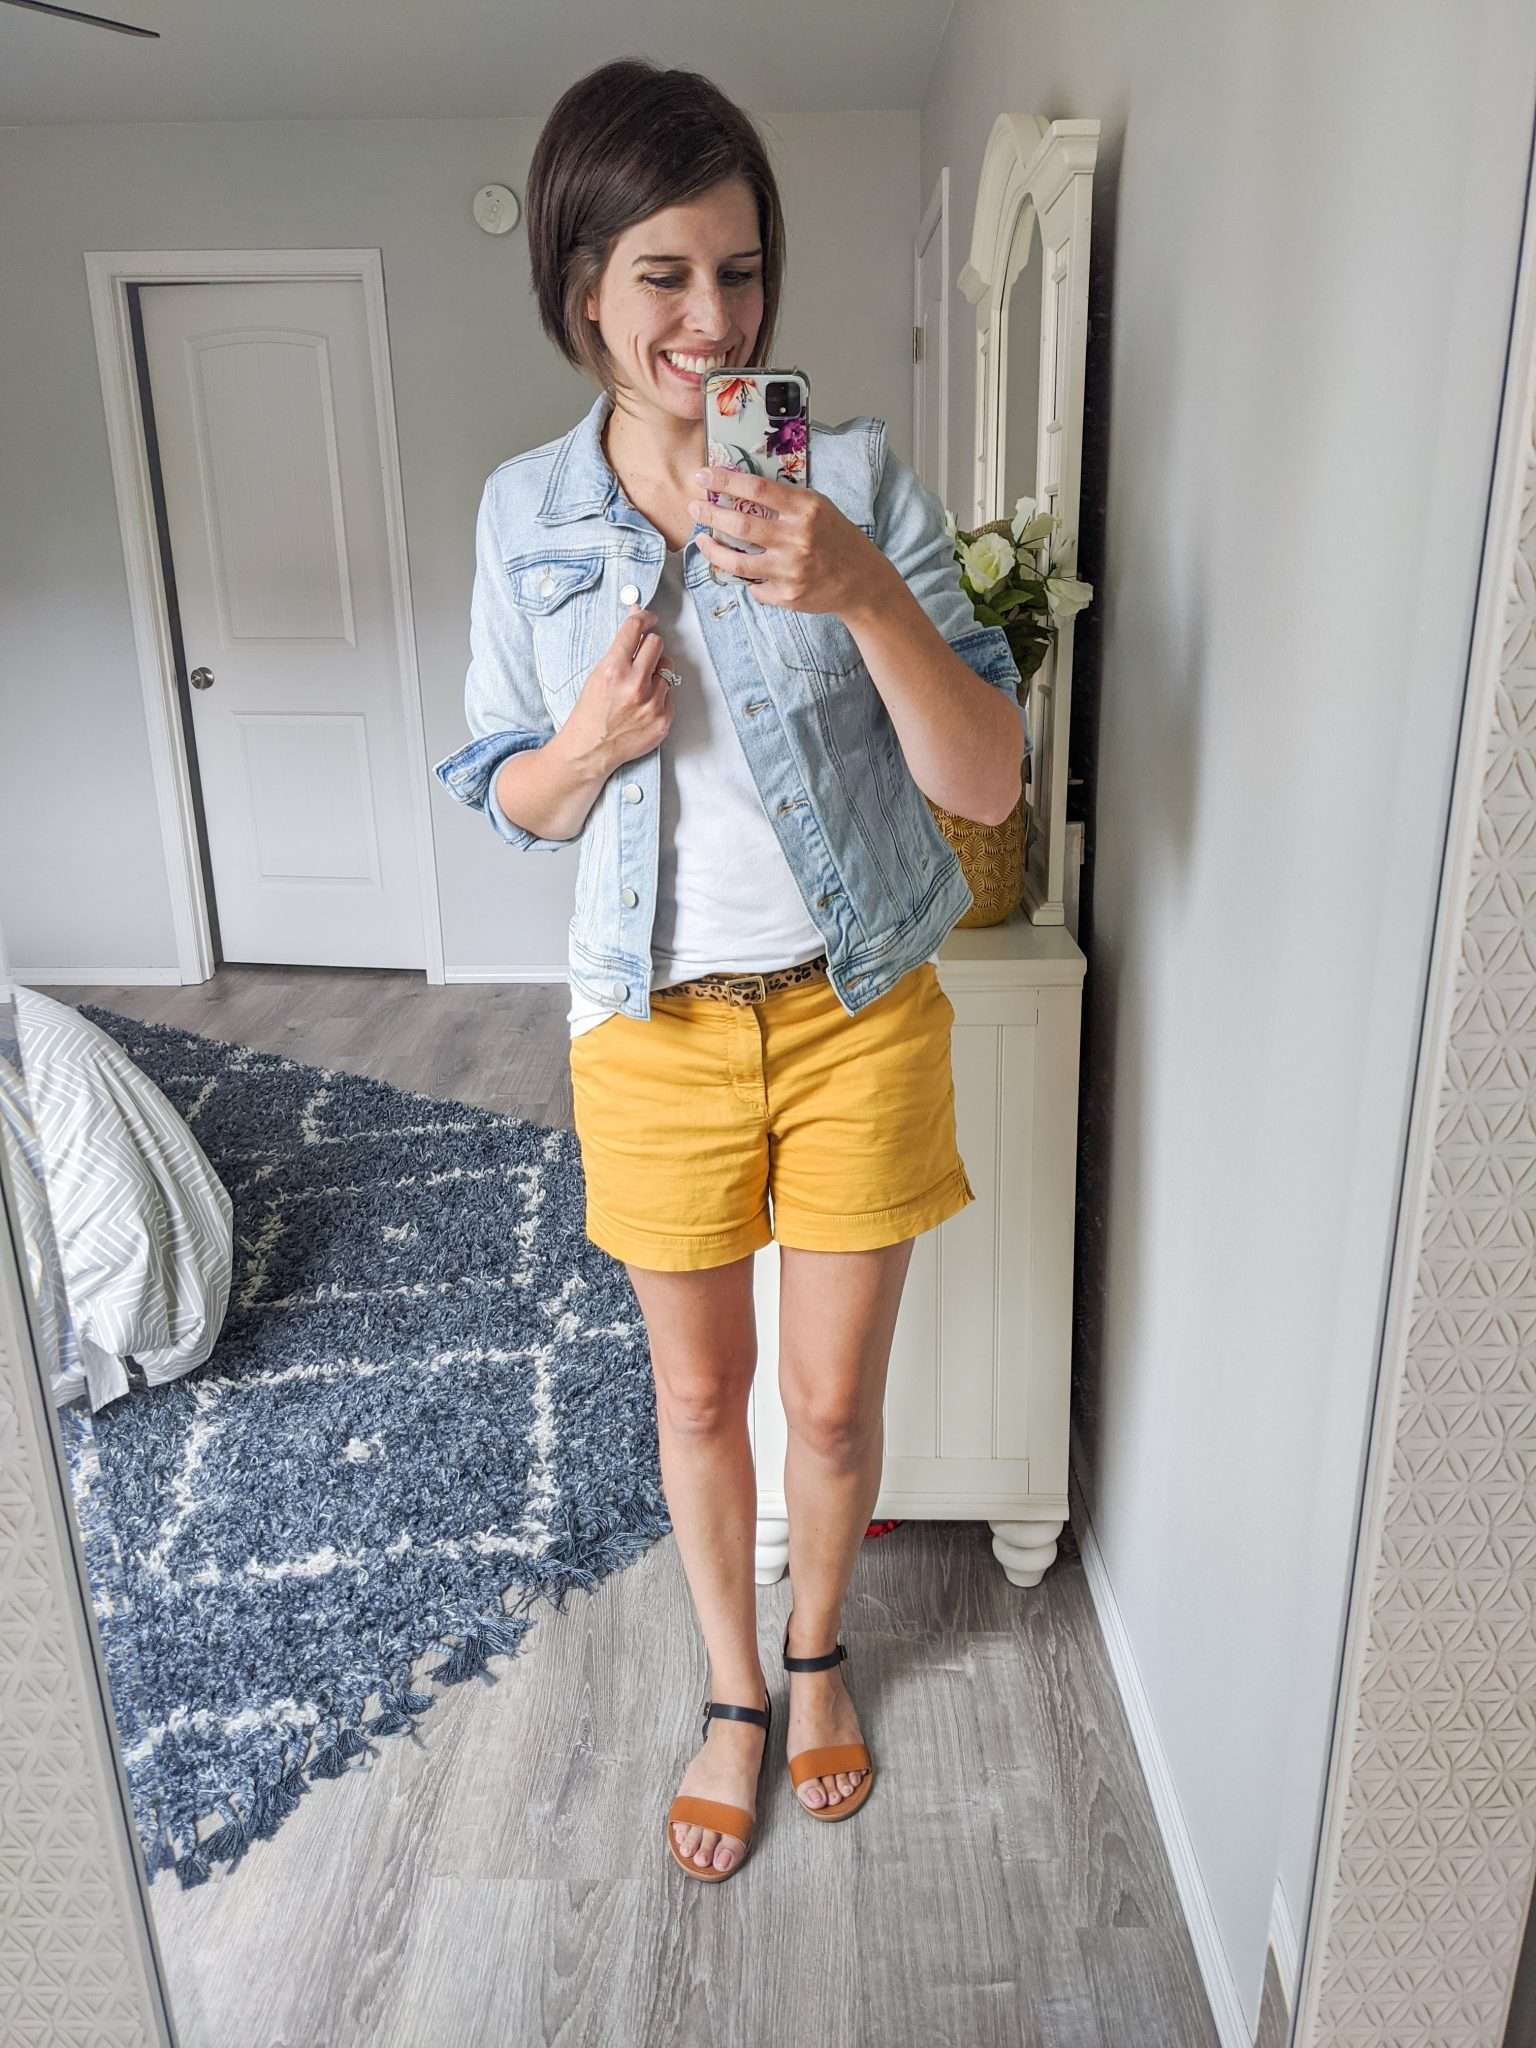 Summer to Fall transition outfits - How to transition summer clothes to fall - Denim jackets are your friend